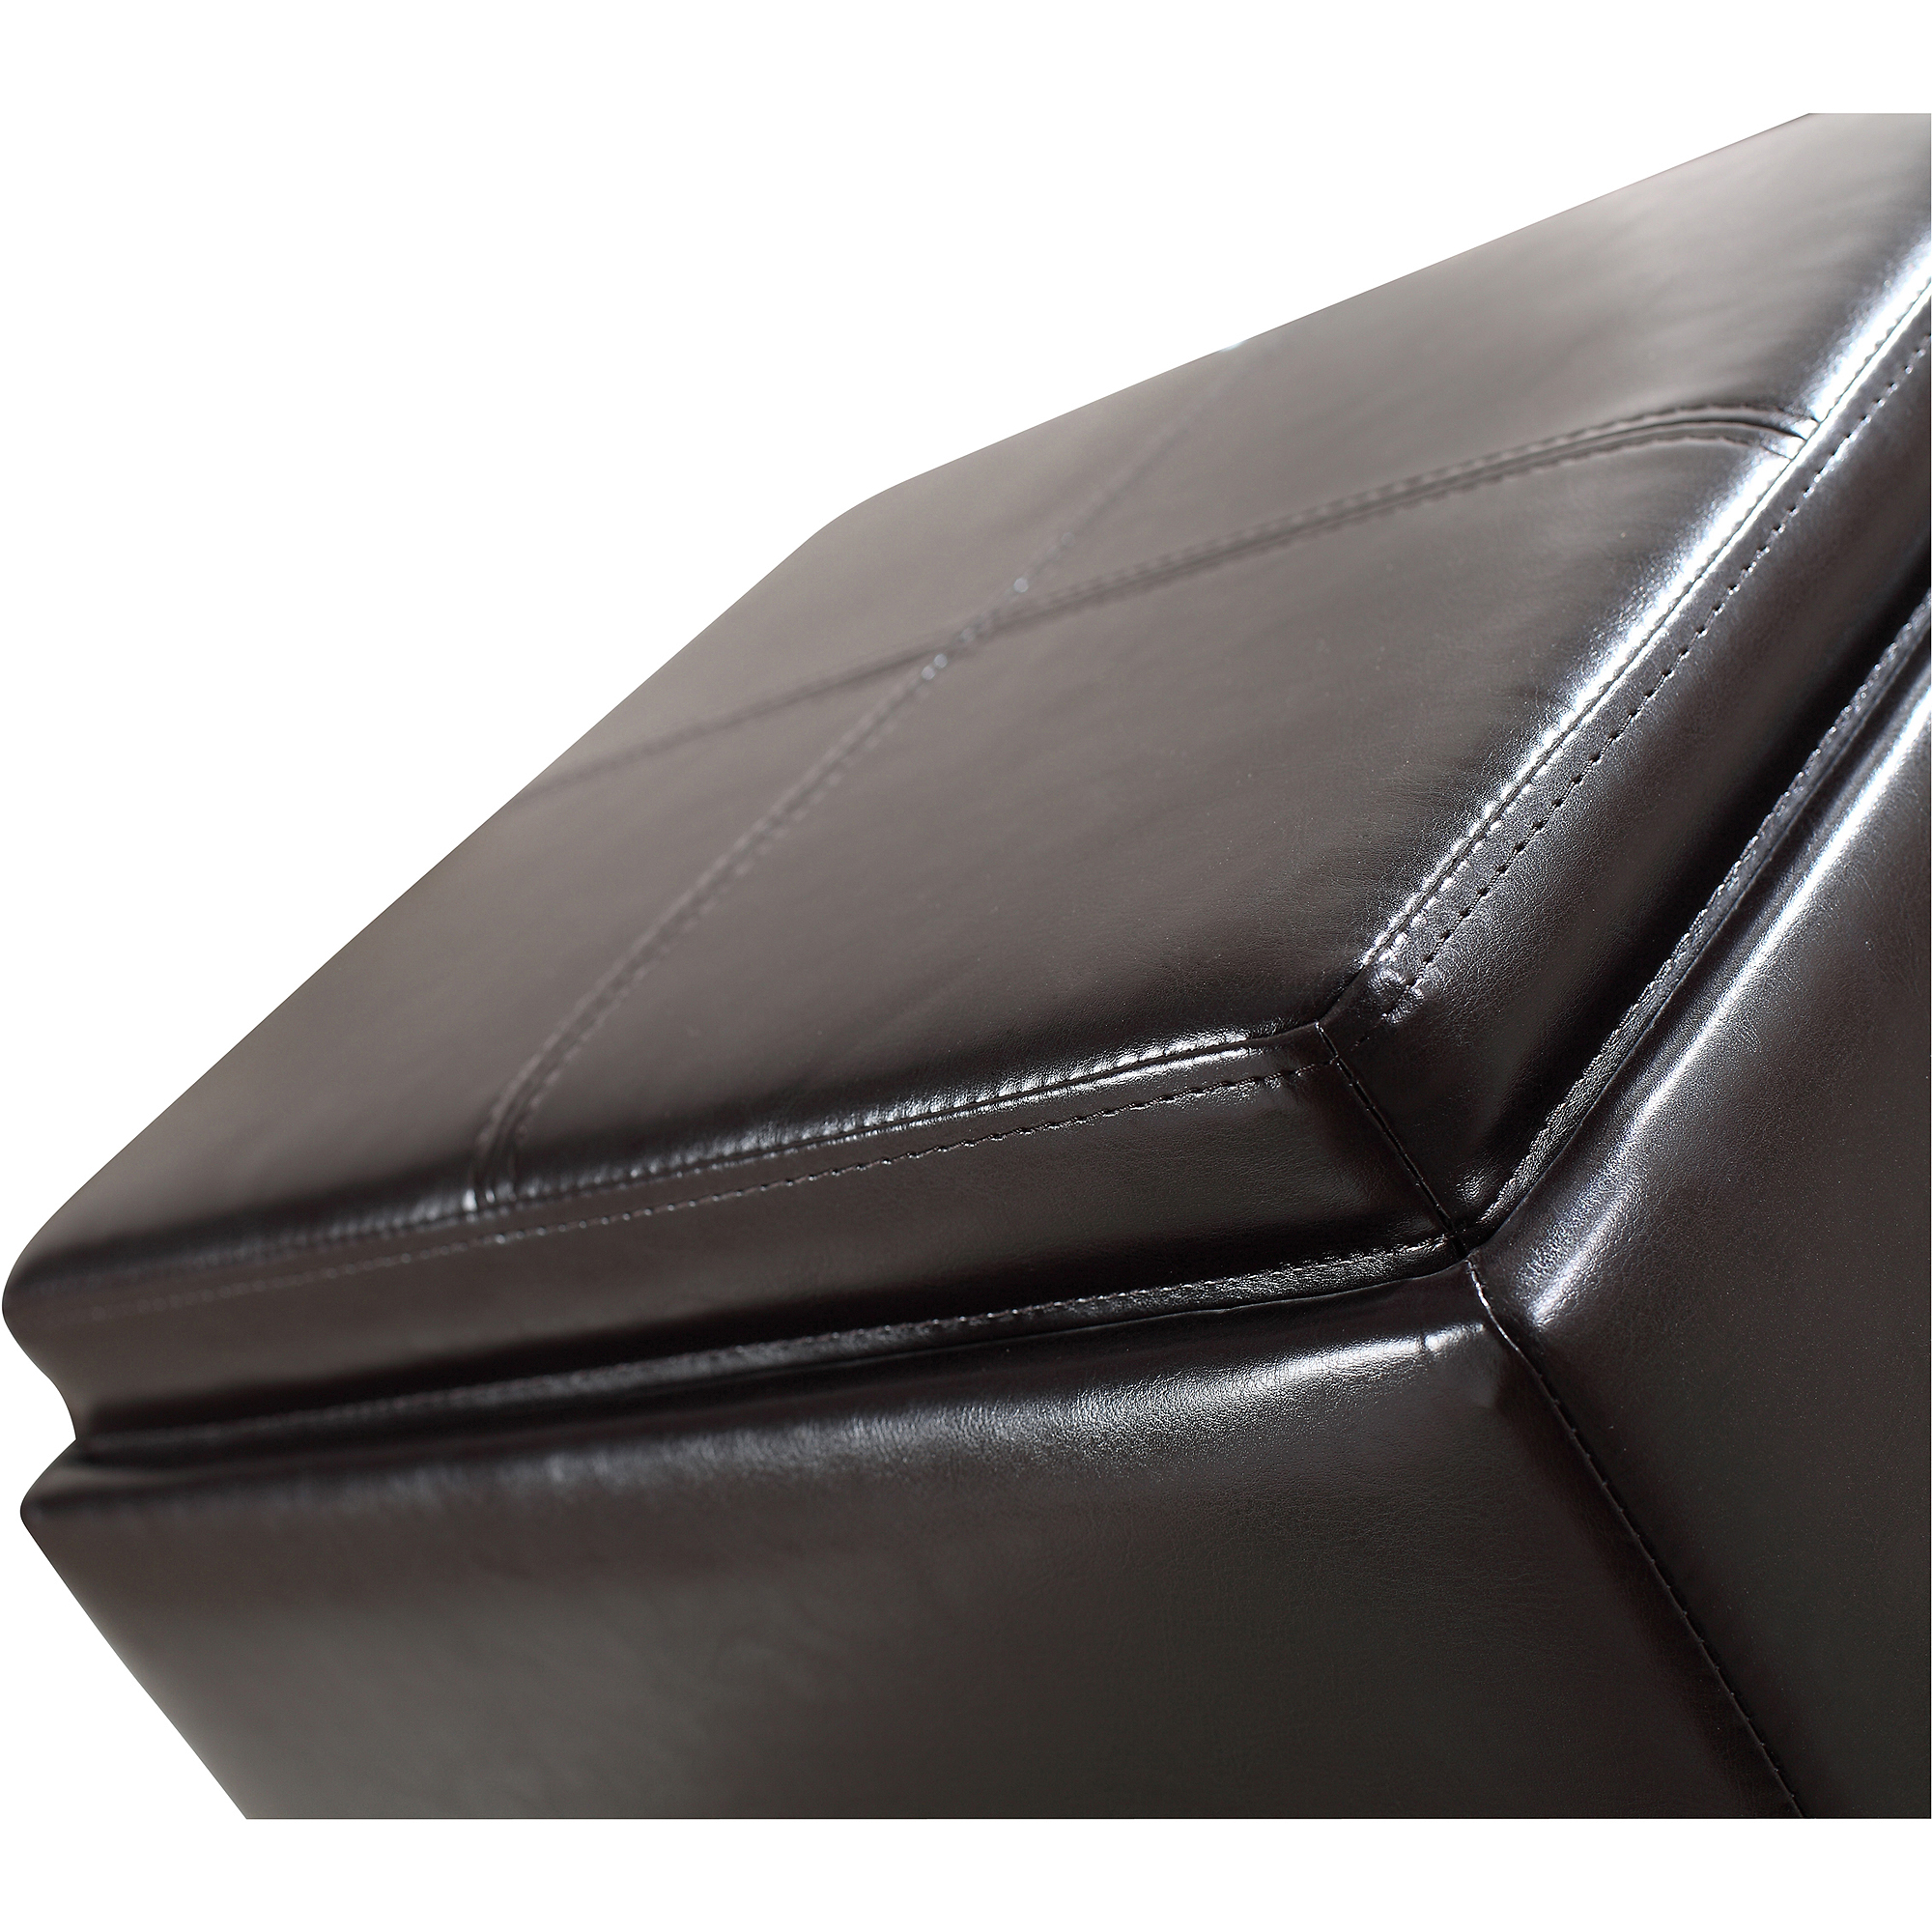 Extra Large Ottoman | Leather Rectangular Ottoman Coffee Table | Large Square Ottoman with Storage